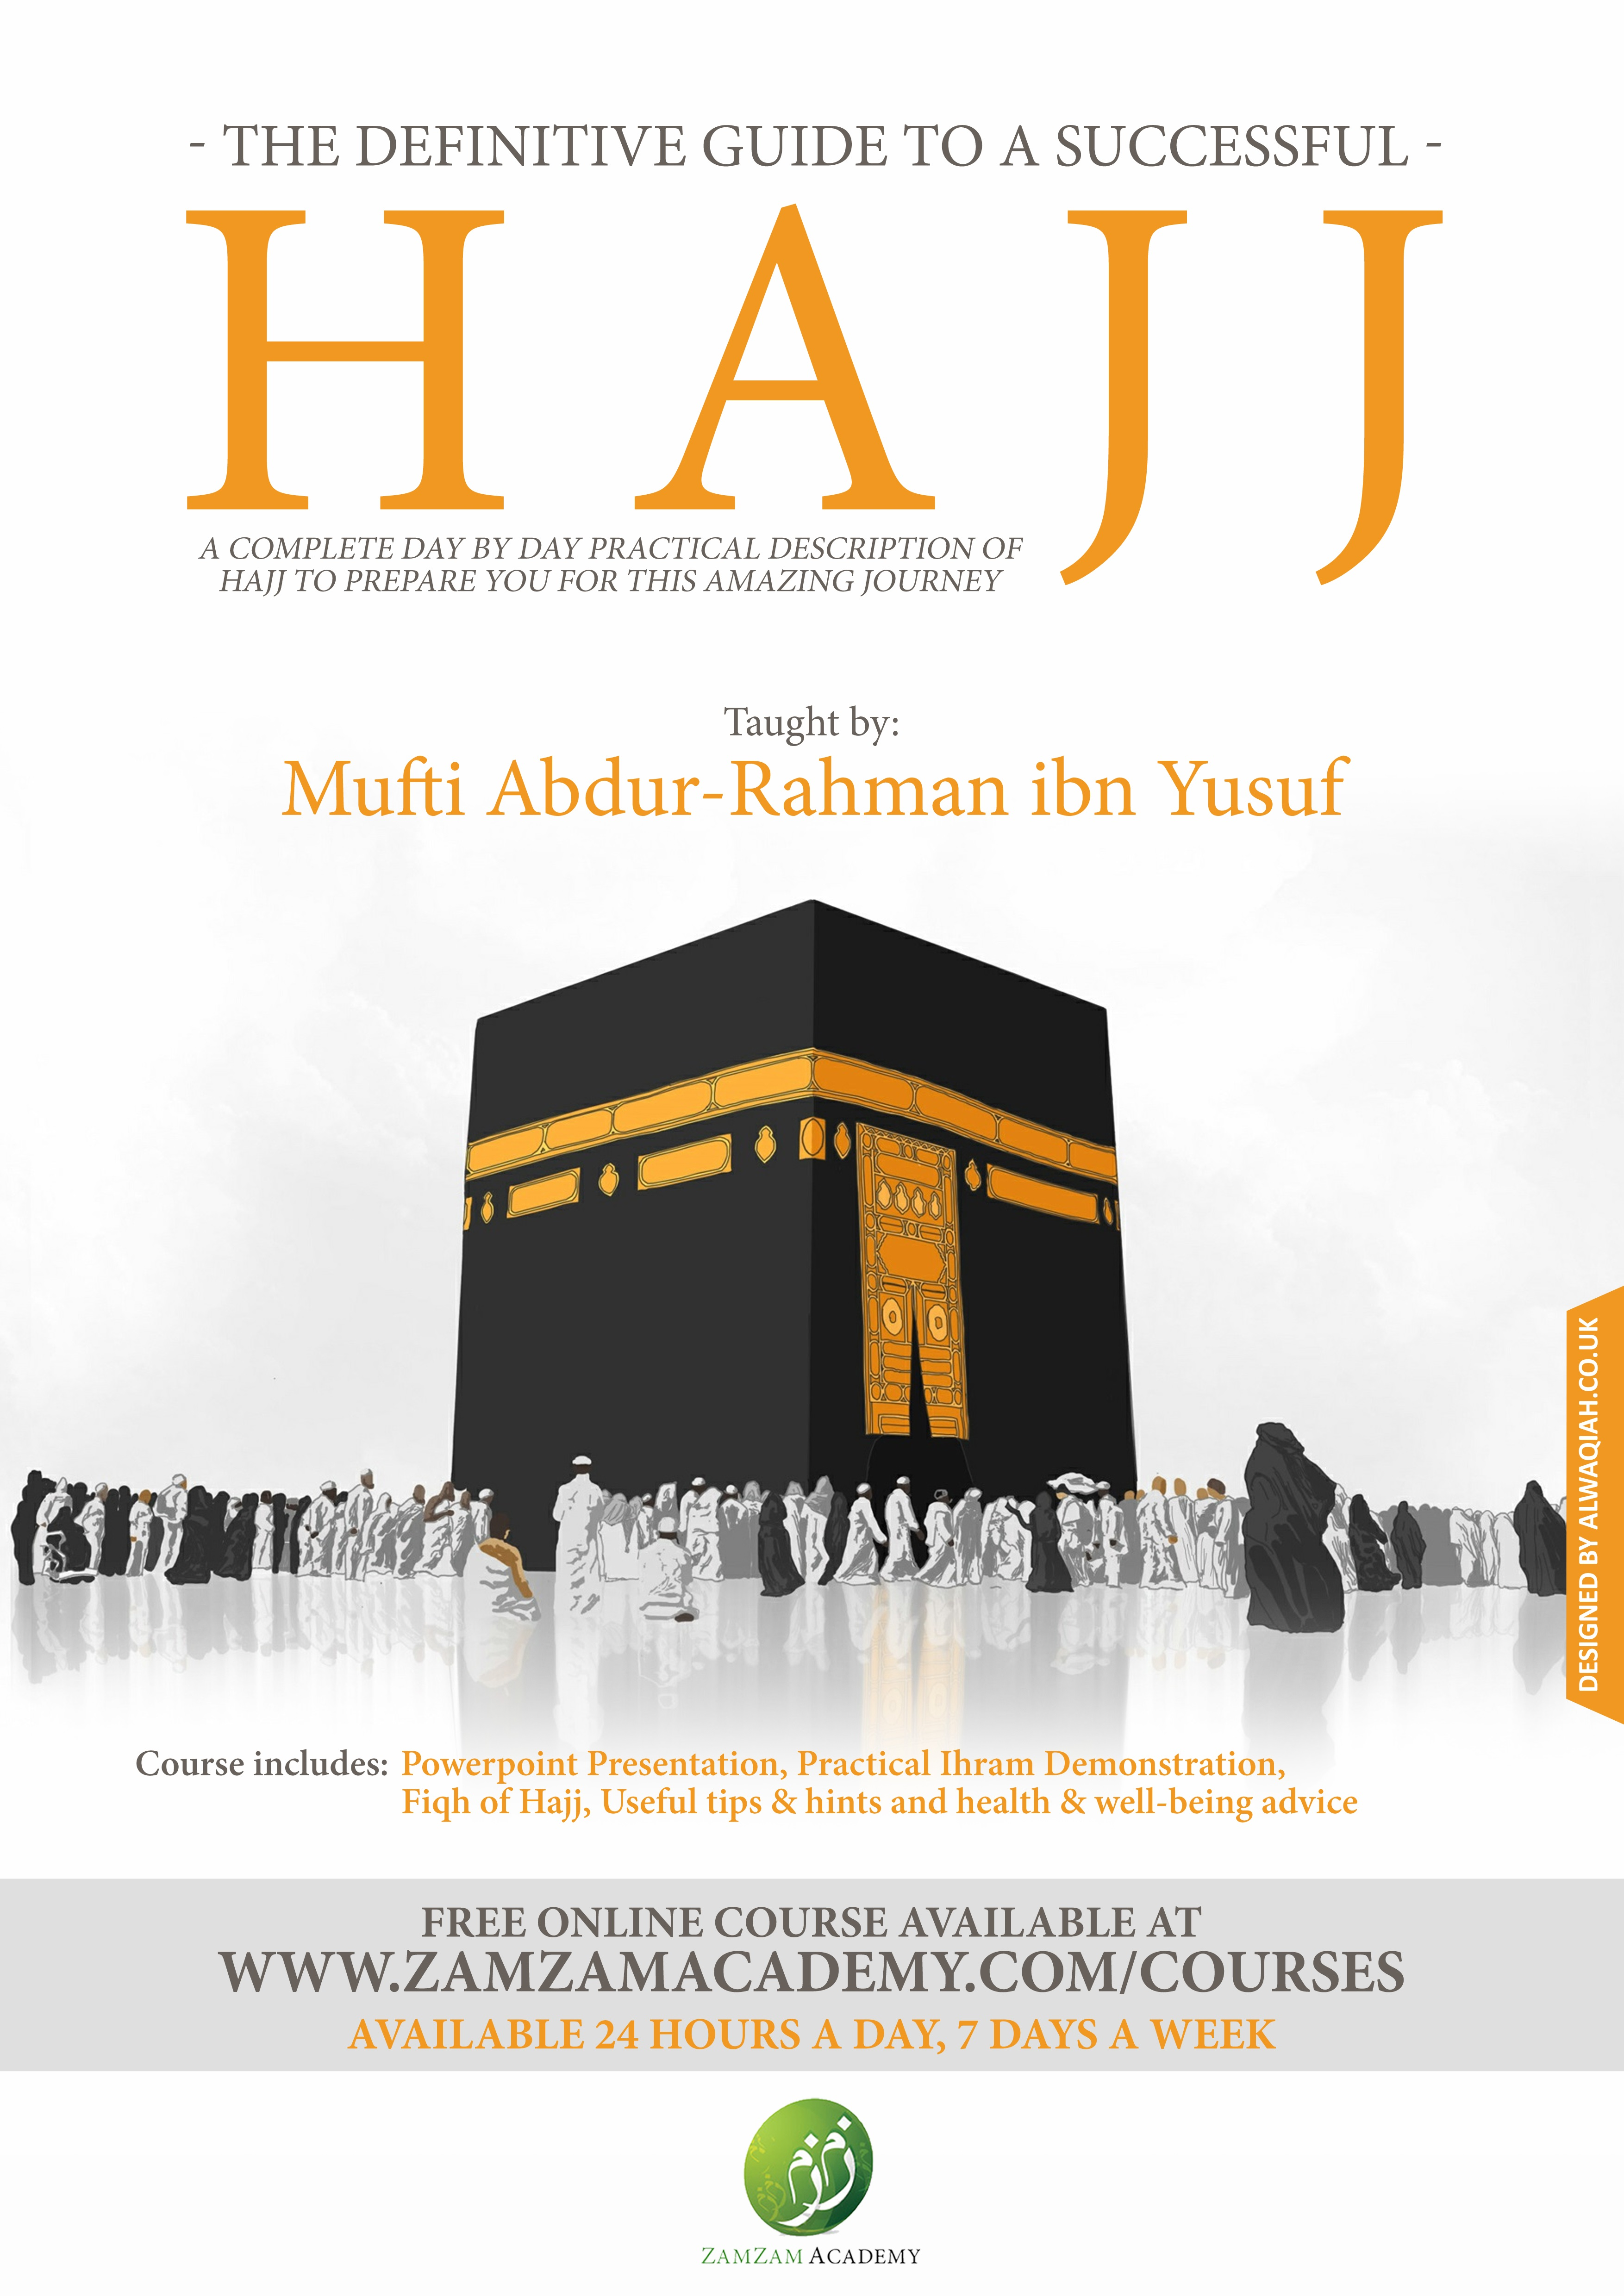 Free Online Course The Definitive Guide To A Successful Hajj